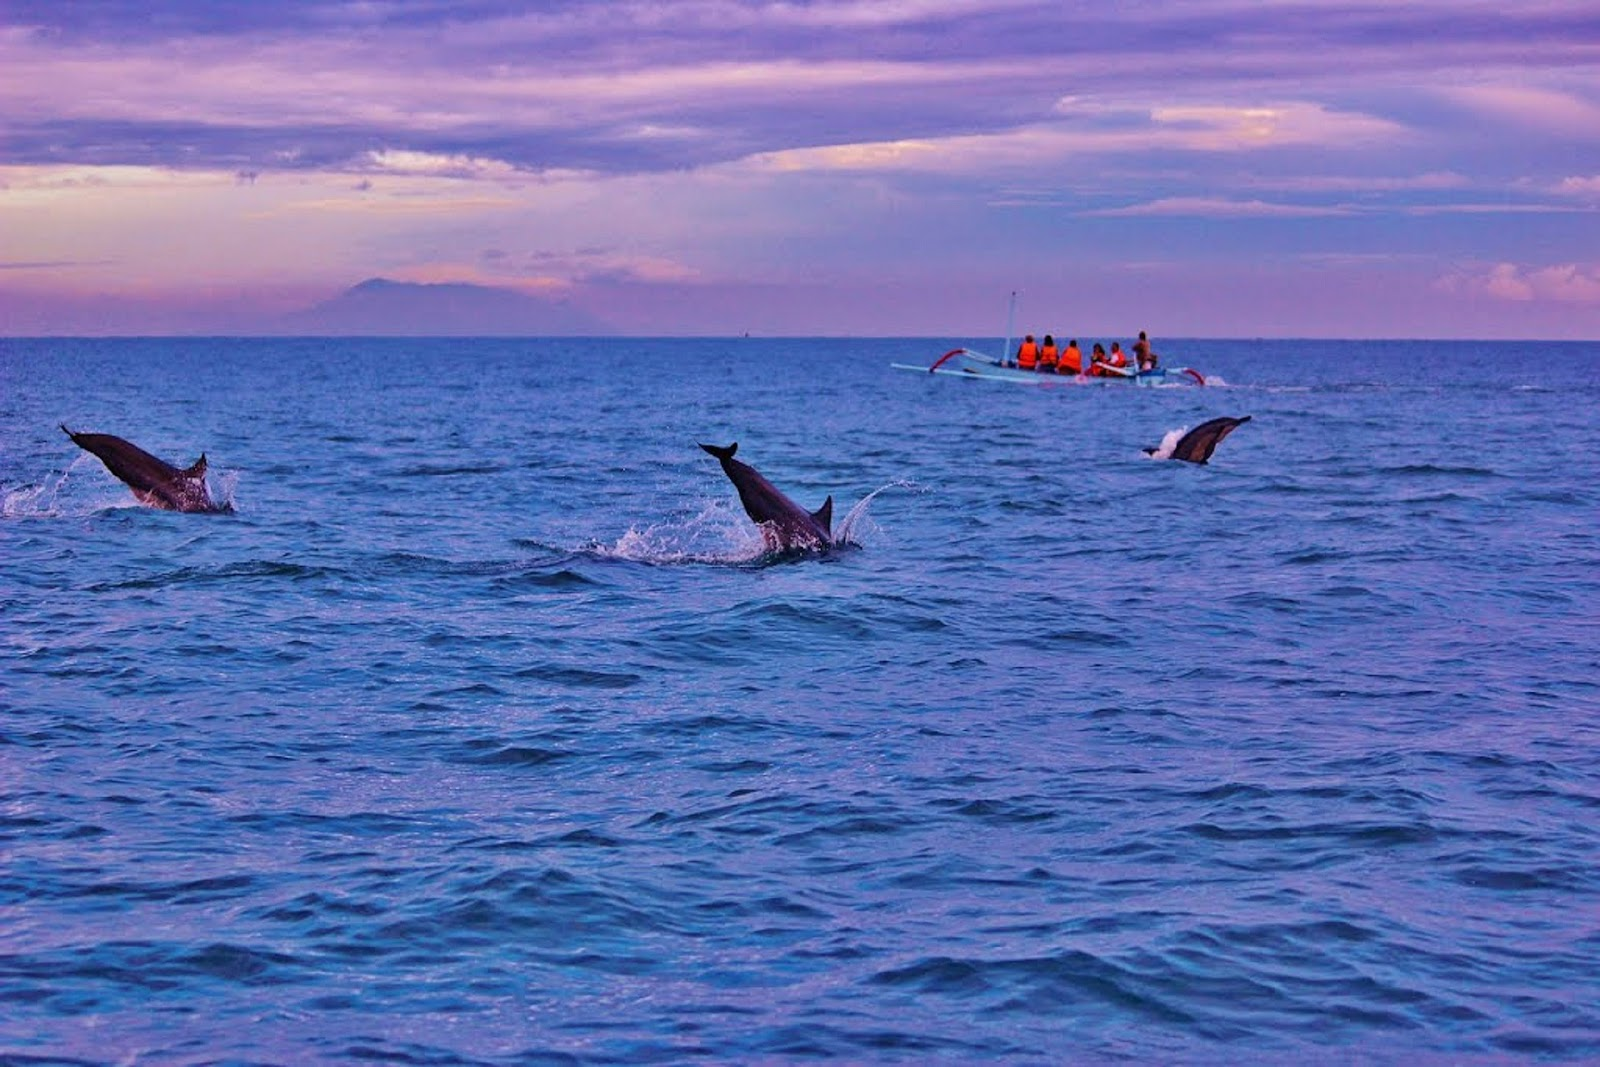 lovina beach bali ocean three dolphins jumping out of blue water and tourist boat tour nearby during sunrise indonesia